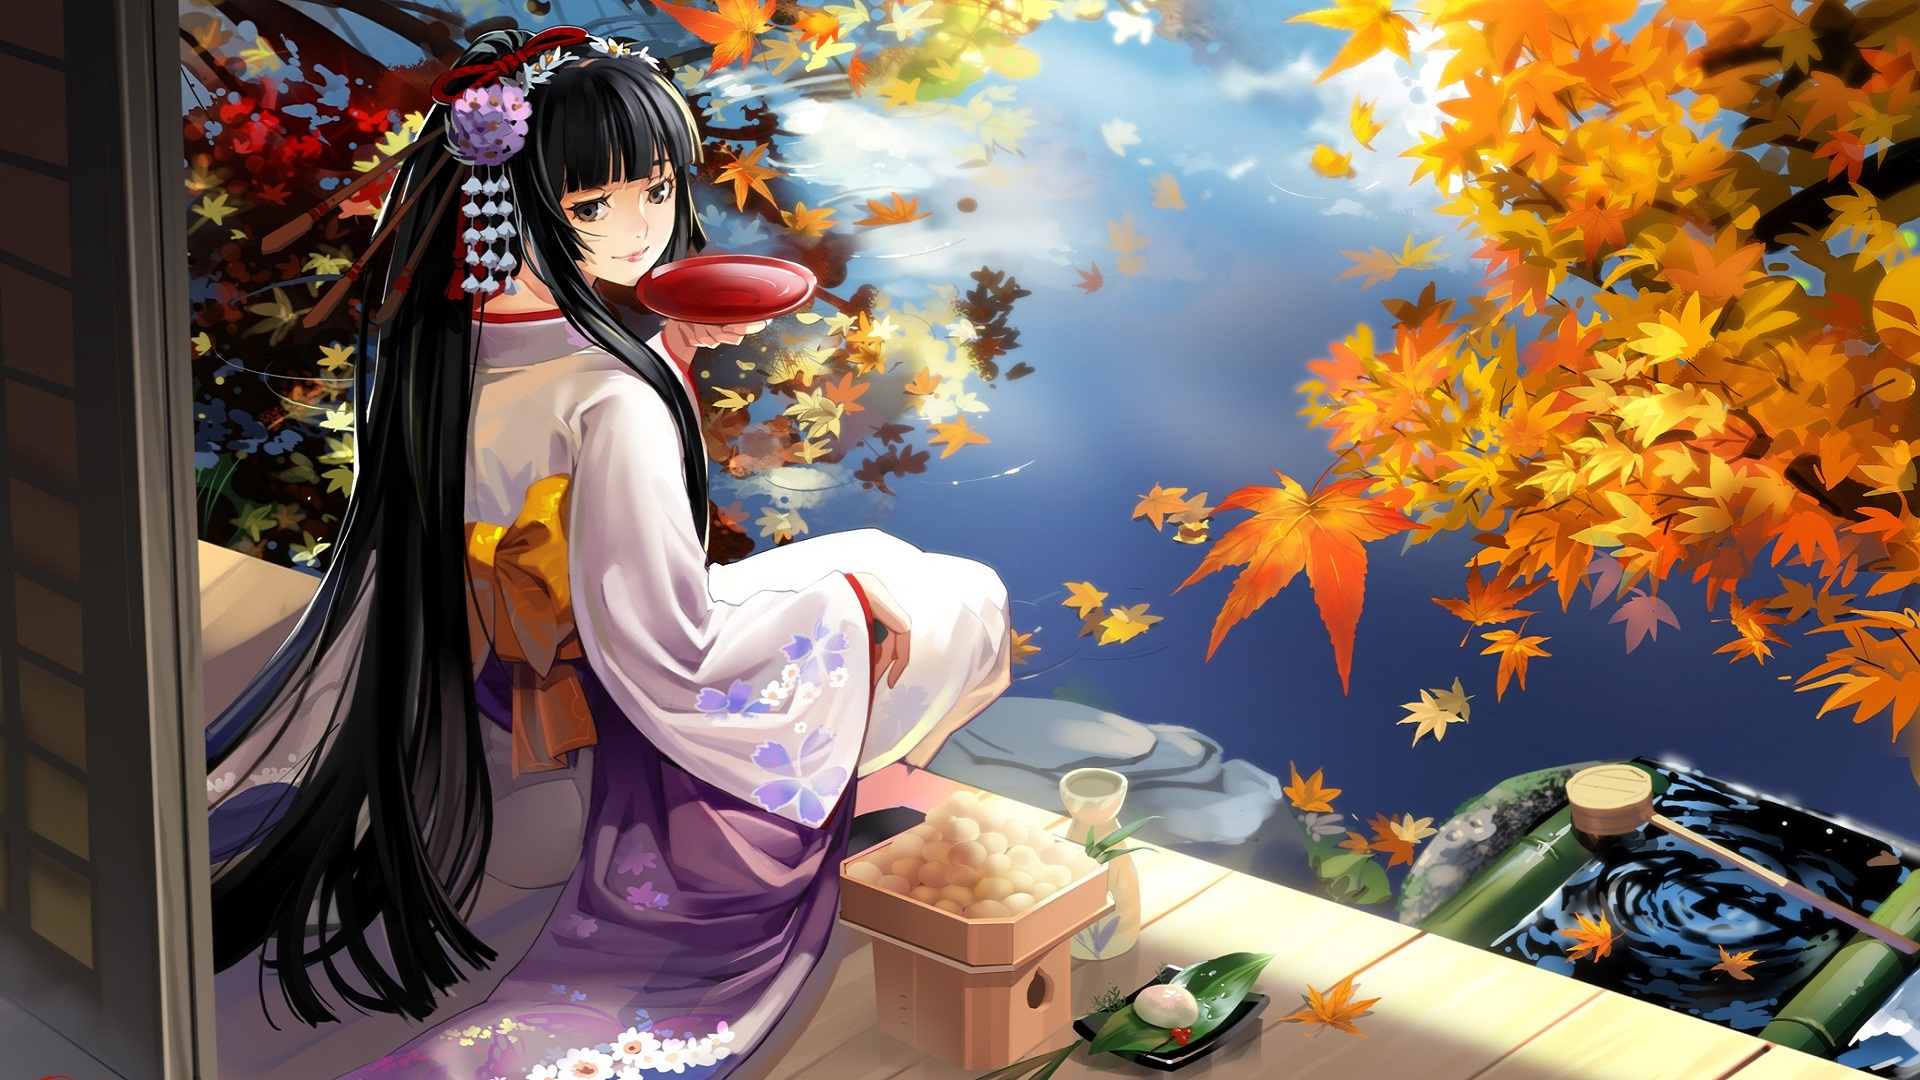 Autumn Anime Scenery Wallpaper HD Picture #67420 1920x1080 px